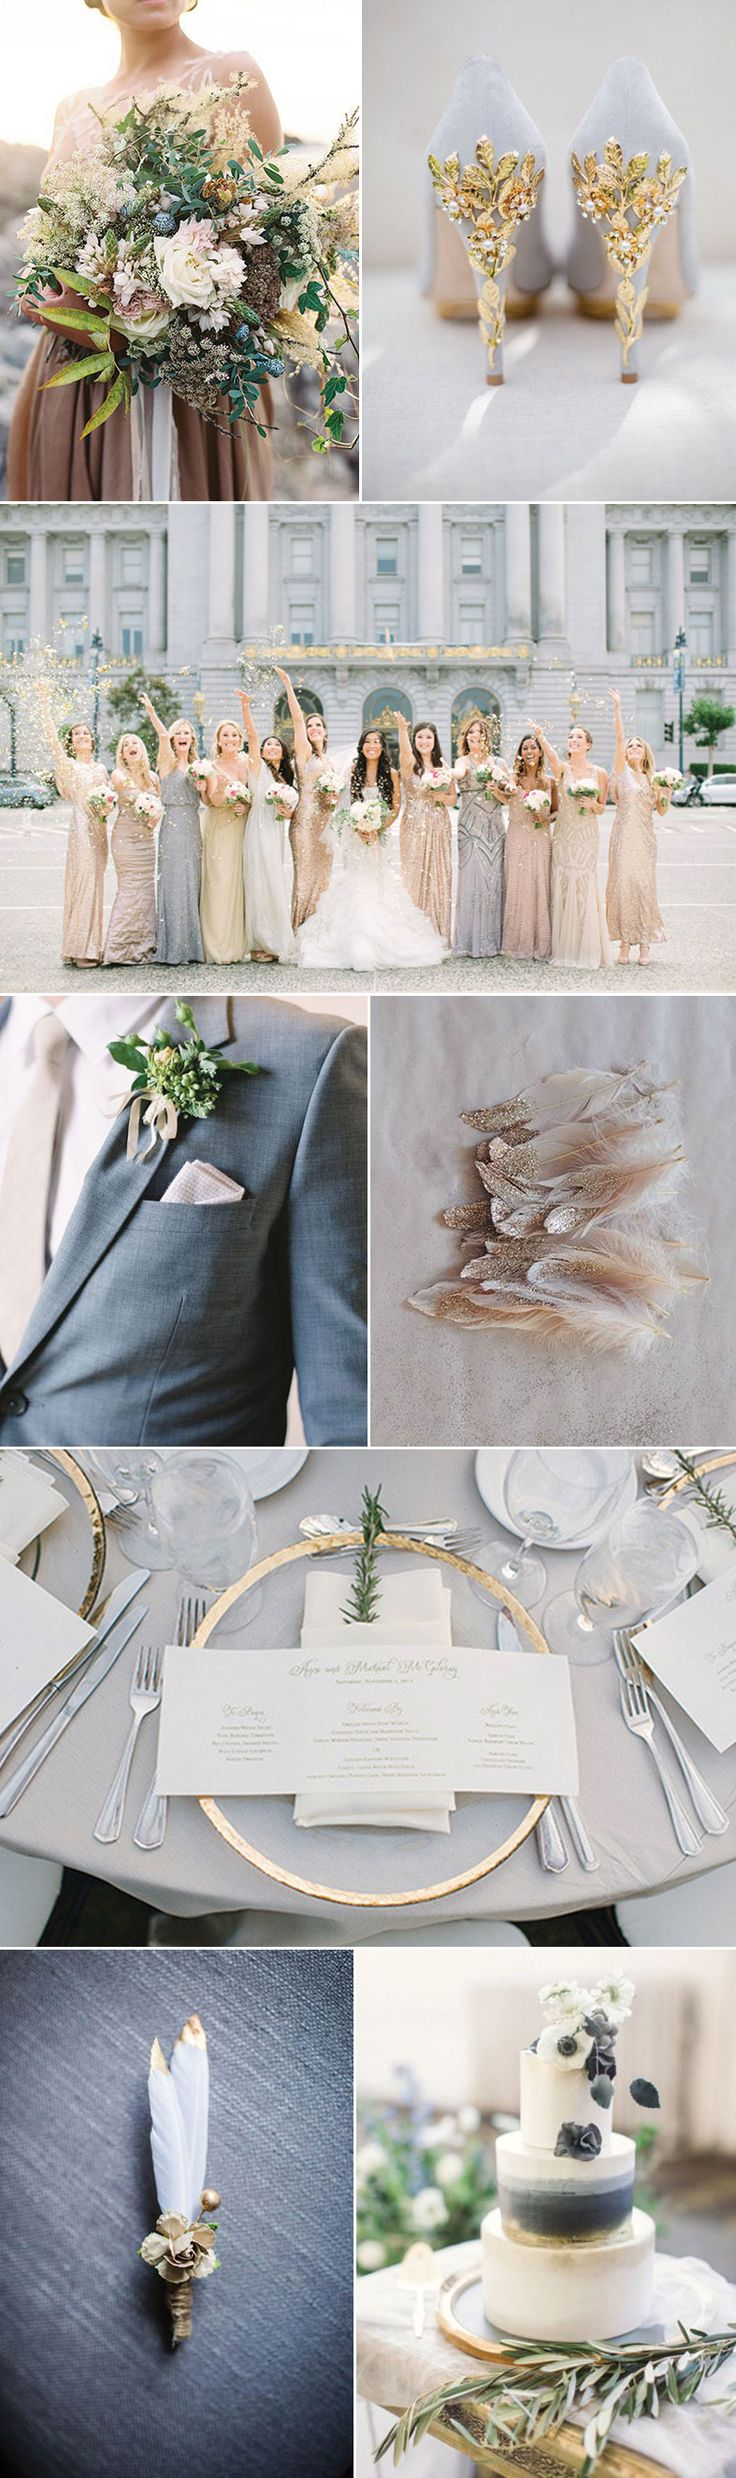 Inspiration for weddings in glam shade of golds, light grays and whites.